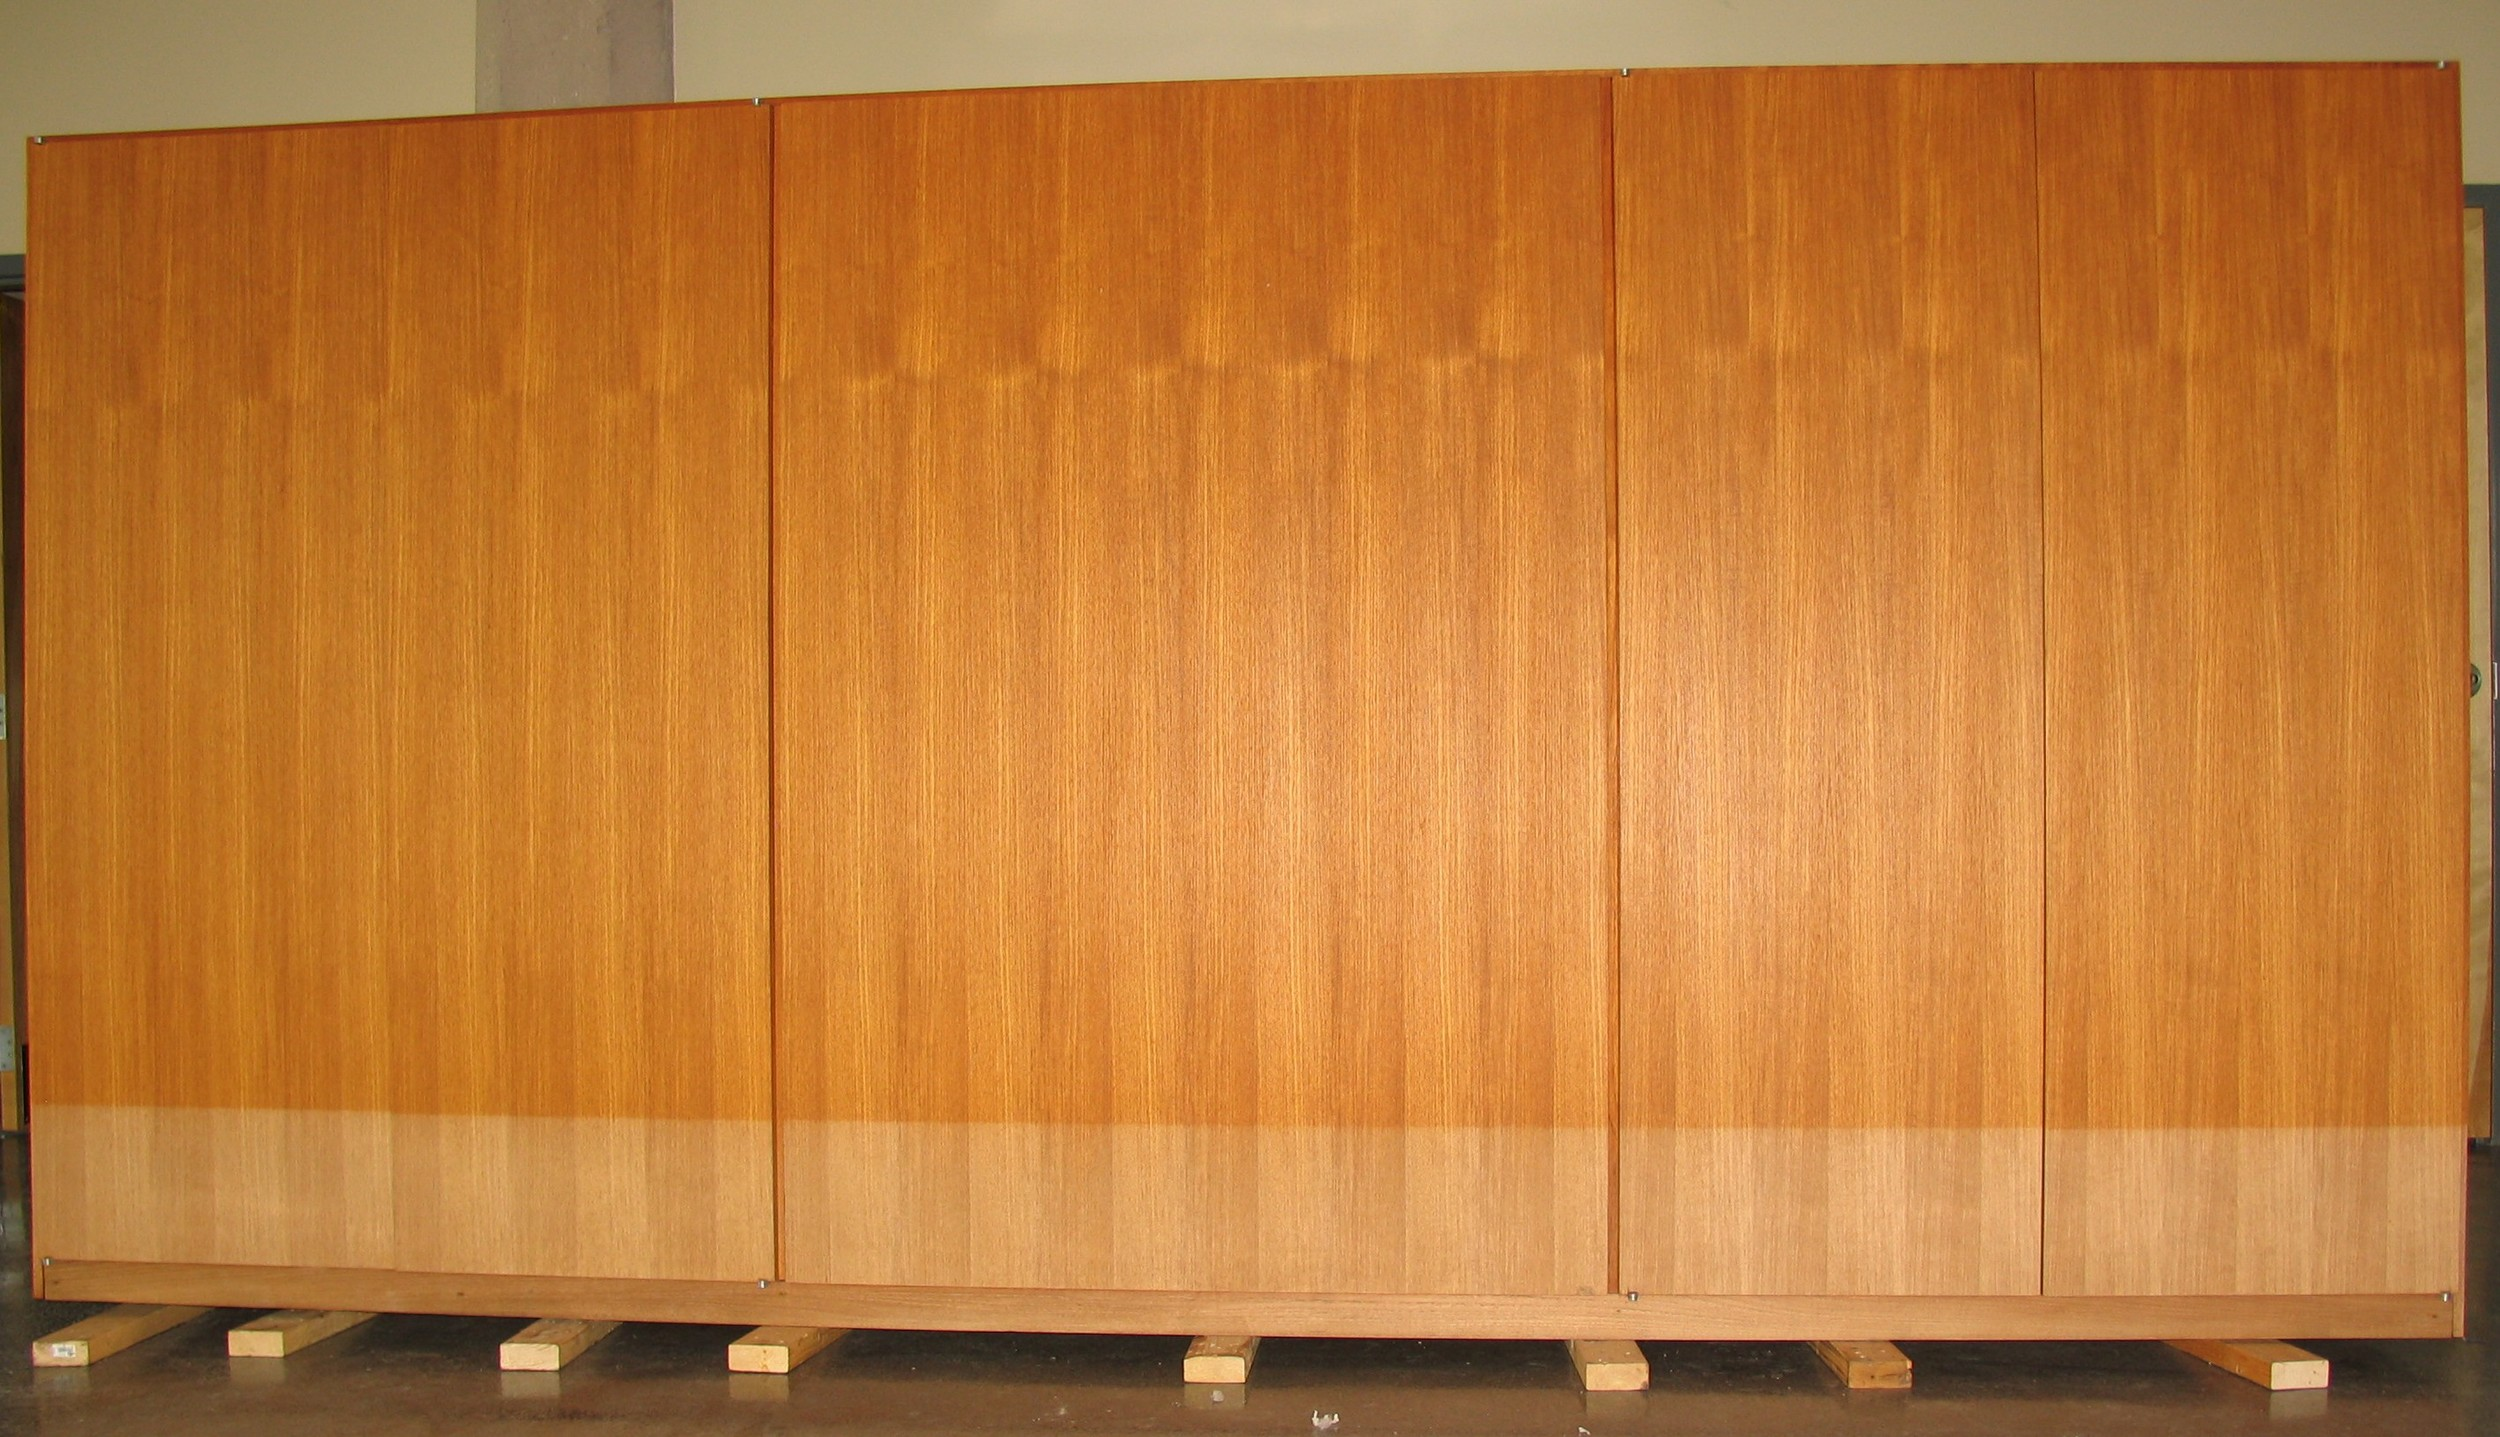 The wardrobe upon arrival to The Conservation Center